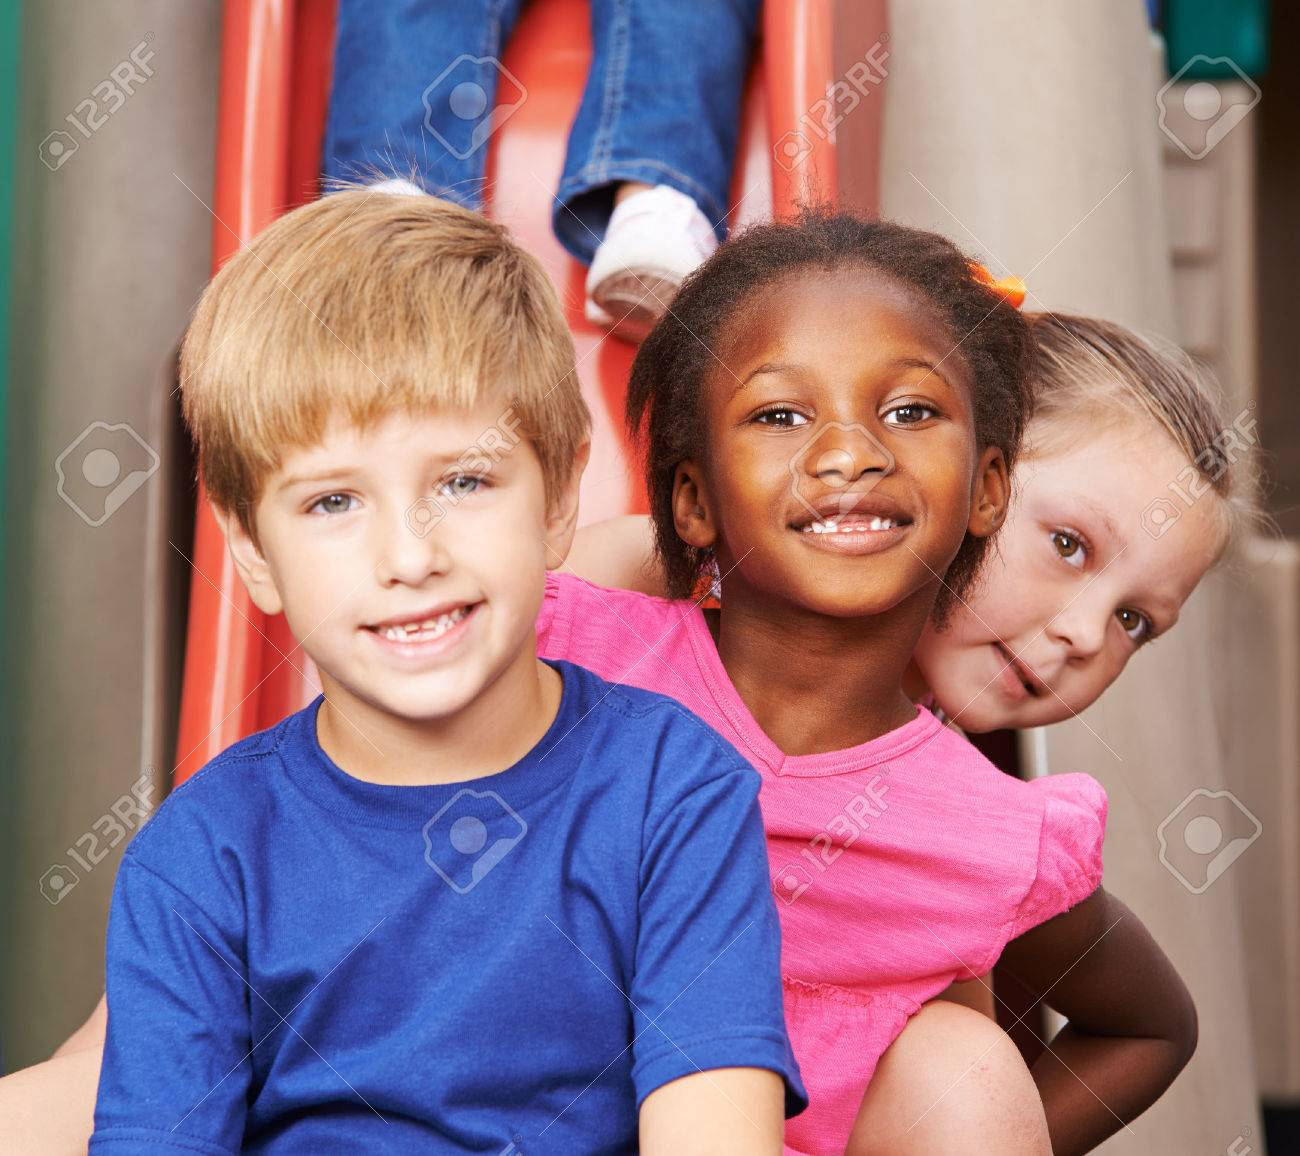 Group of children sitting behind each other on a slide in kindergarten Stock Photo - 47629412